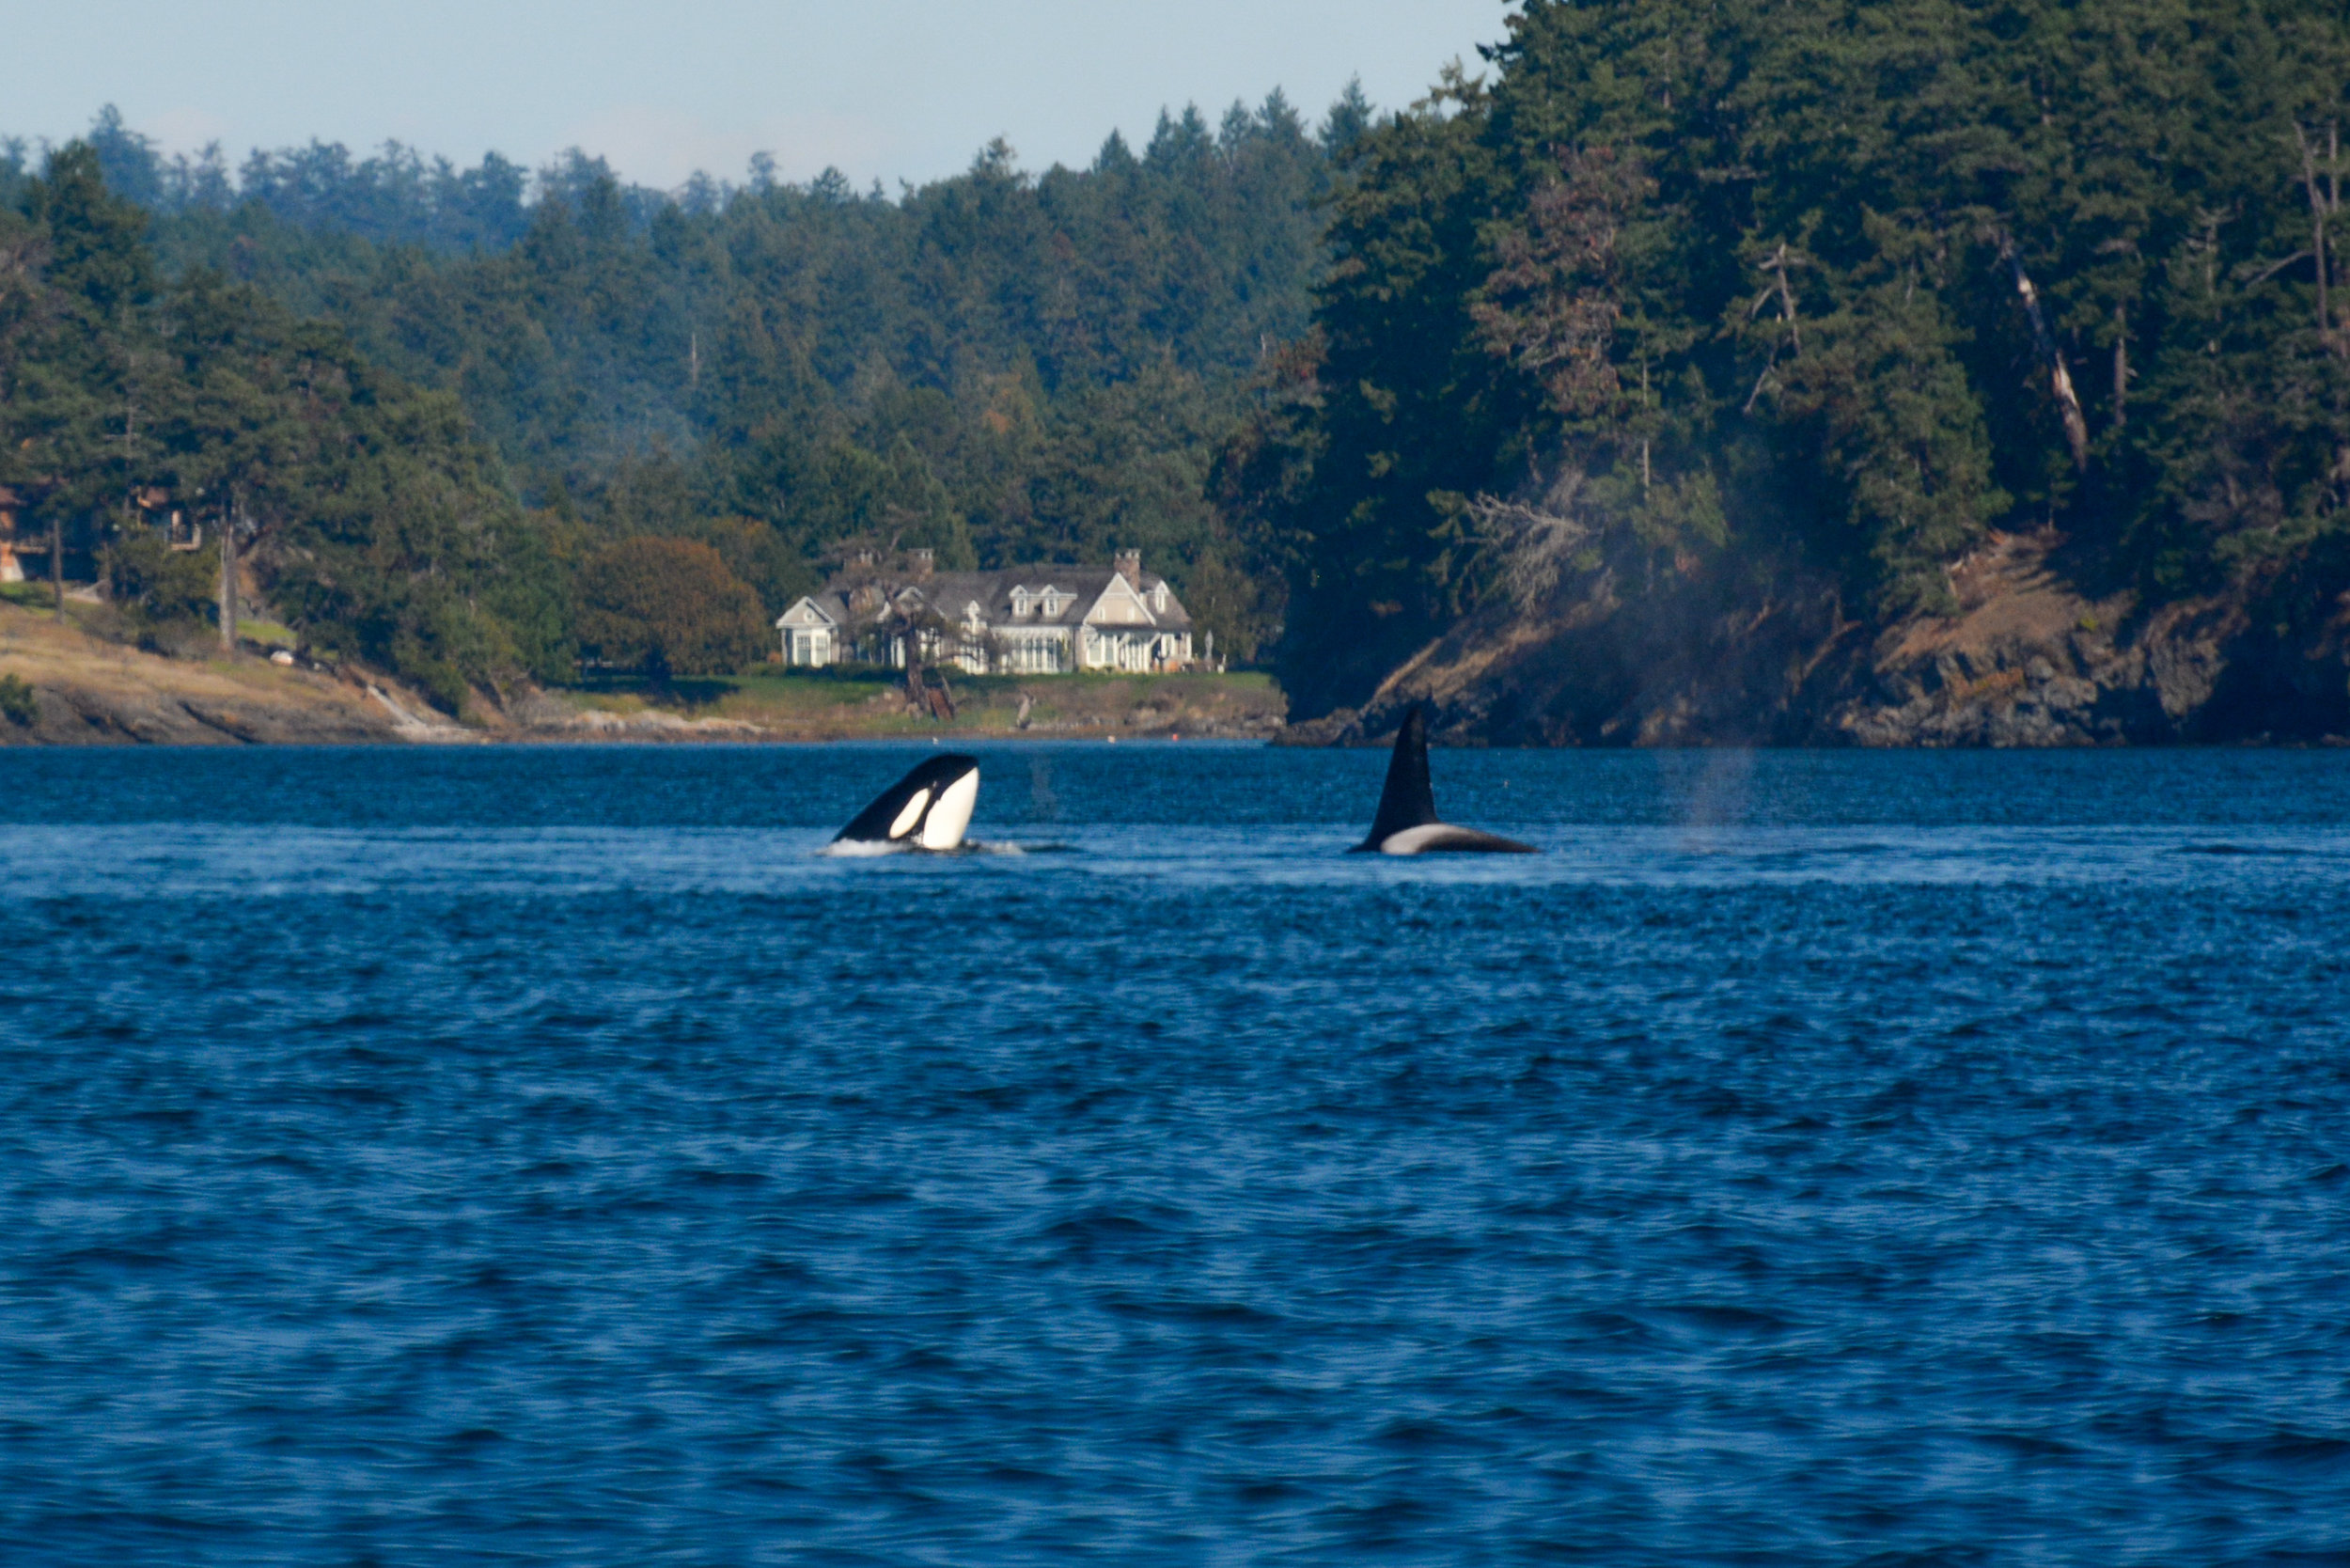 Orca spy hop by T65A2 as T49A1 (right) dives down. Photo by Alanna Vivani.